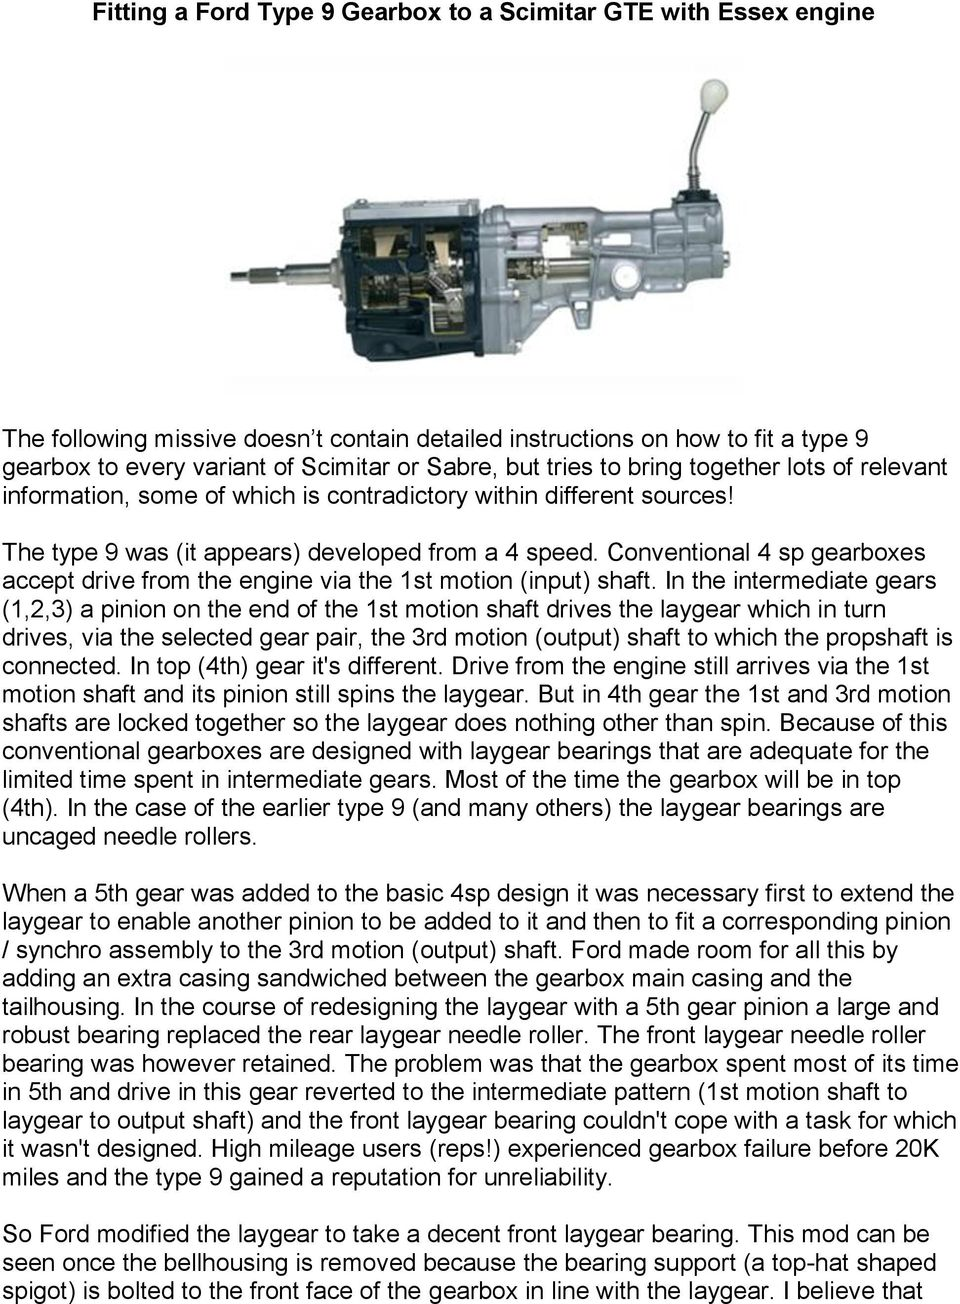 Fitting a Ford Type 9 Gearbox to a Scimitar GTE with Essex engine - PDF